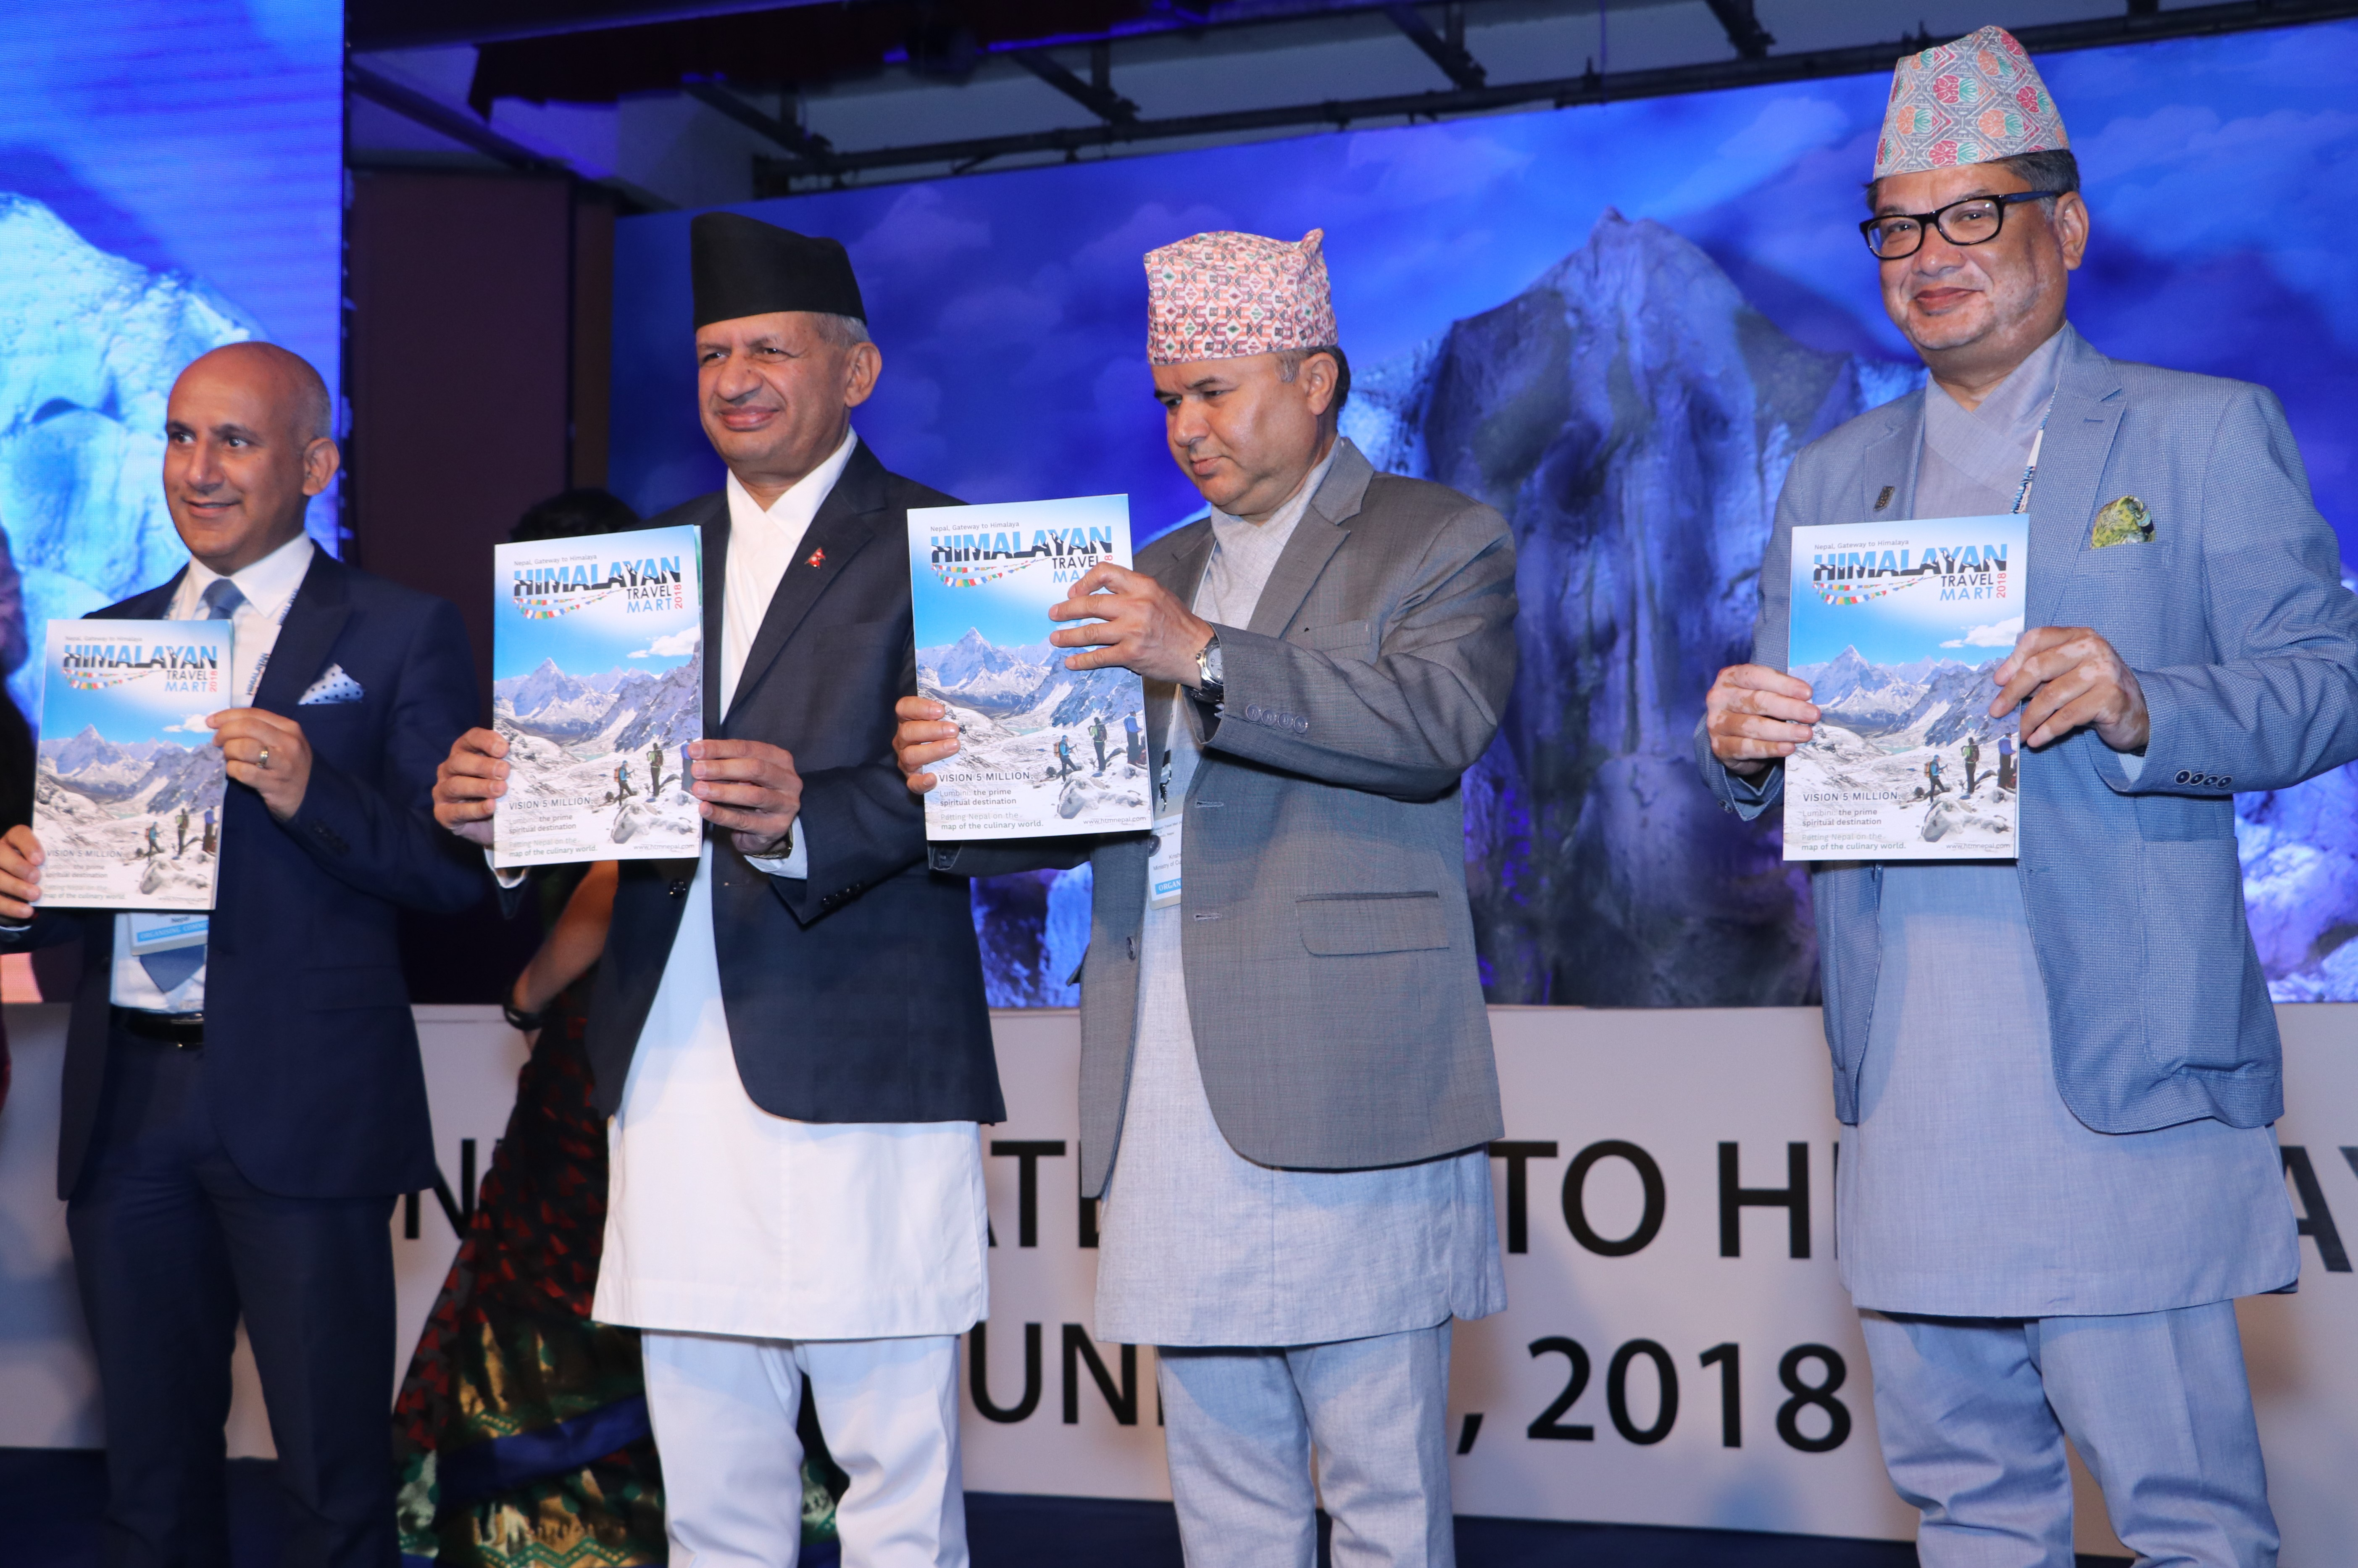 Minister for Foreign Affairs Pradeep Gyawali among others at the inauguration ceremony of International Travel Bloggers and Media Conference (ITBMC) of Himalayan Travel Mart 2018 at Soaltee Crowne Plaza, in Kathmandu, on June 1, 2018. Photo: Nepal Tourism Board